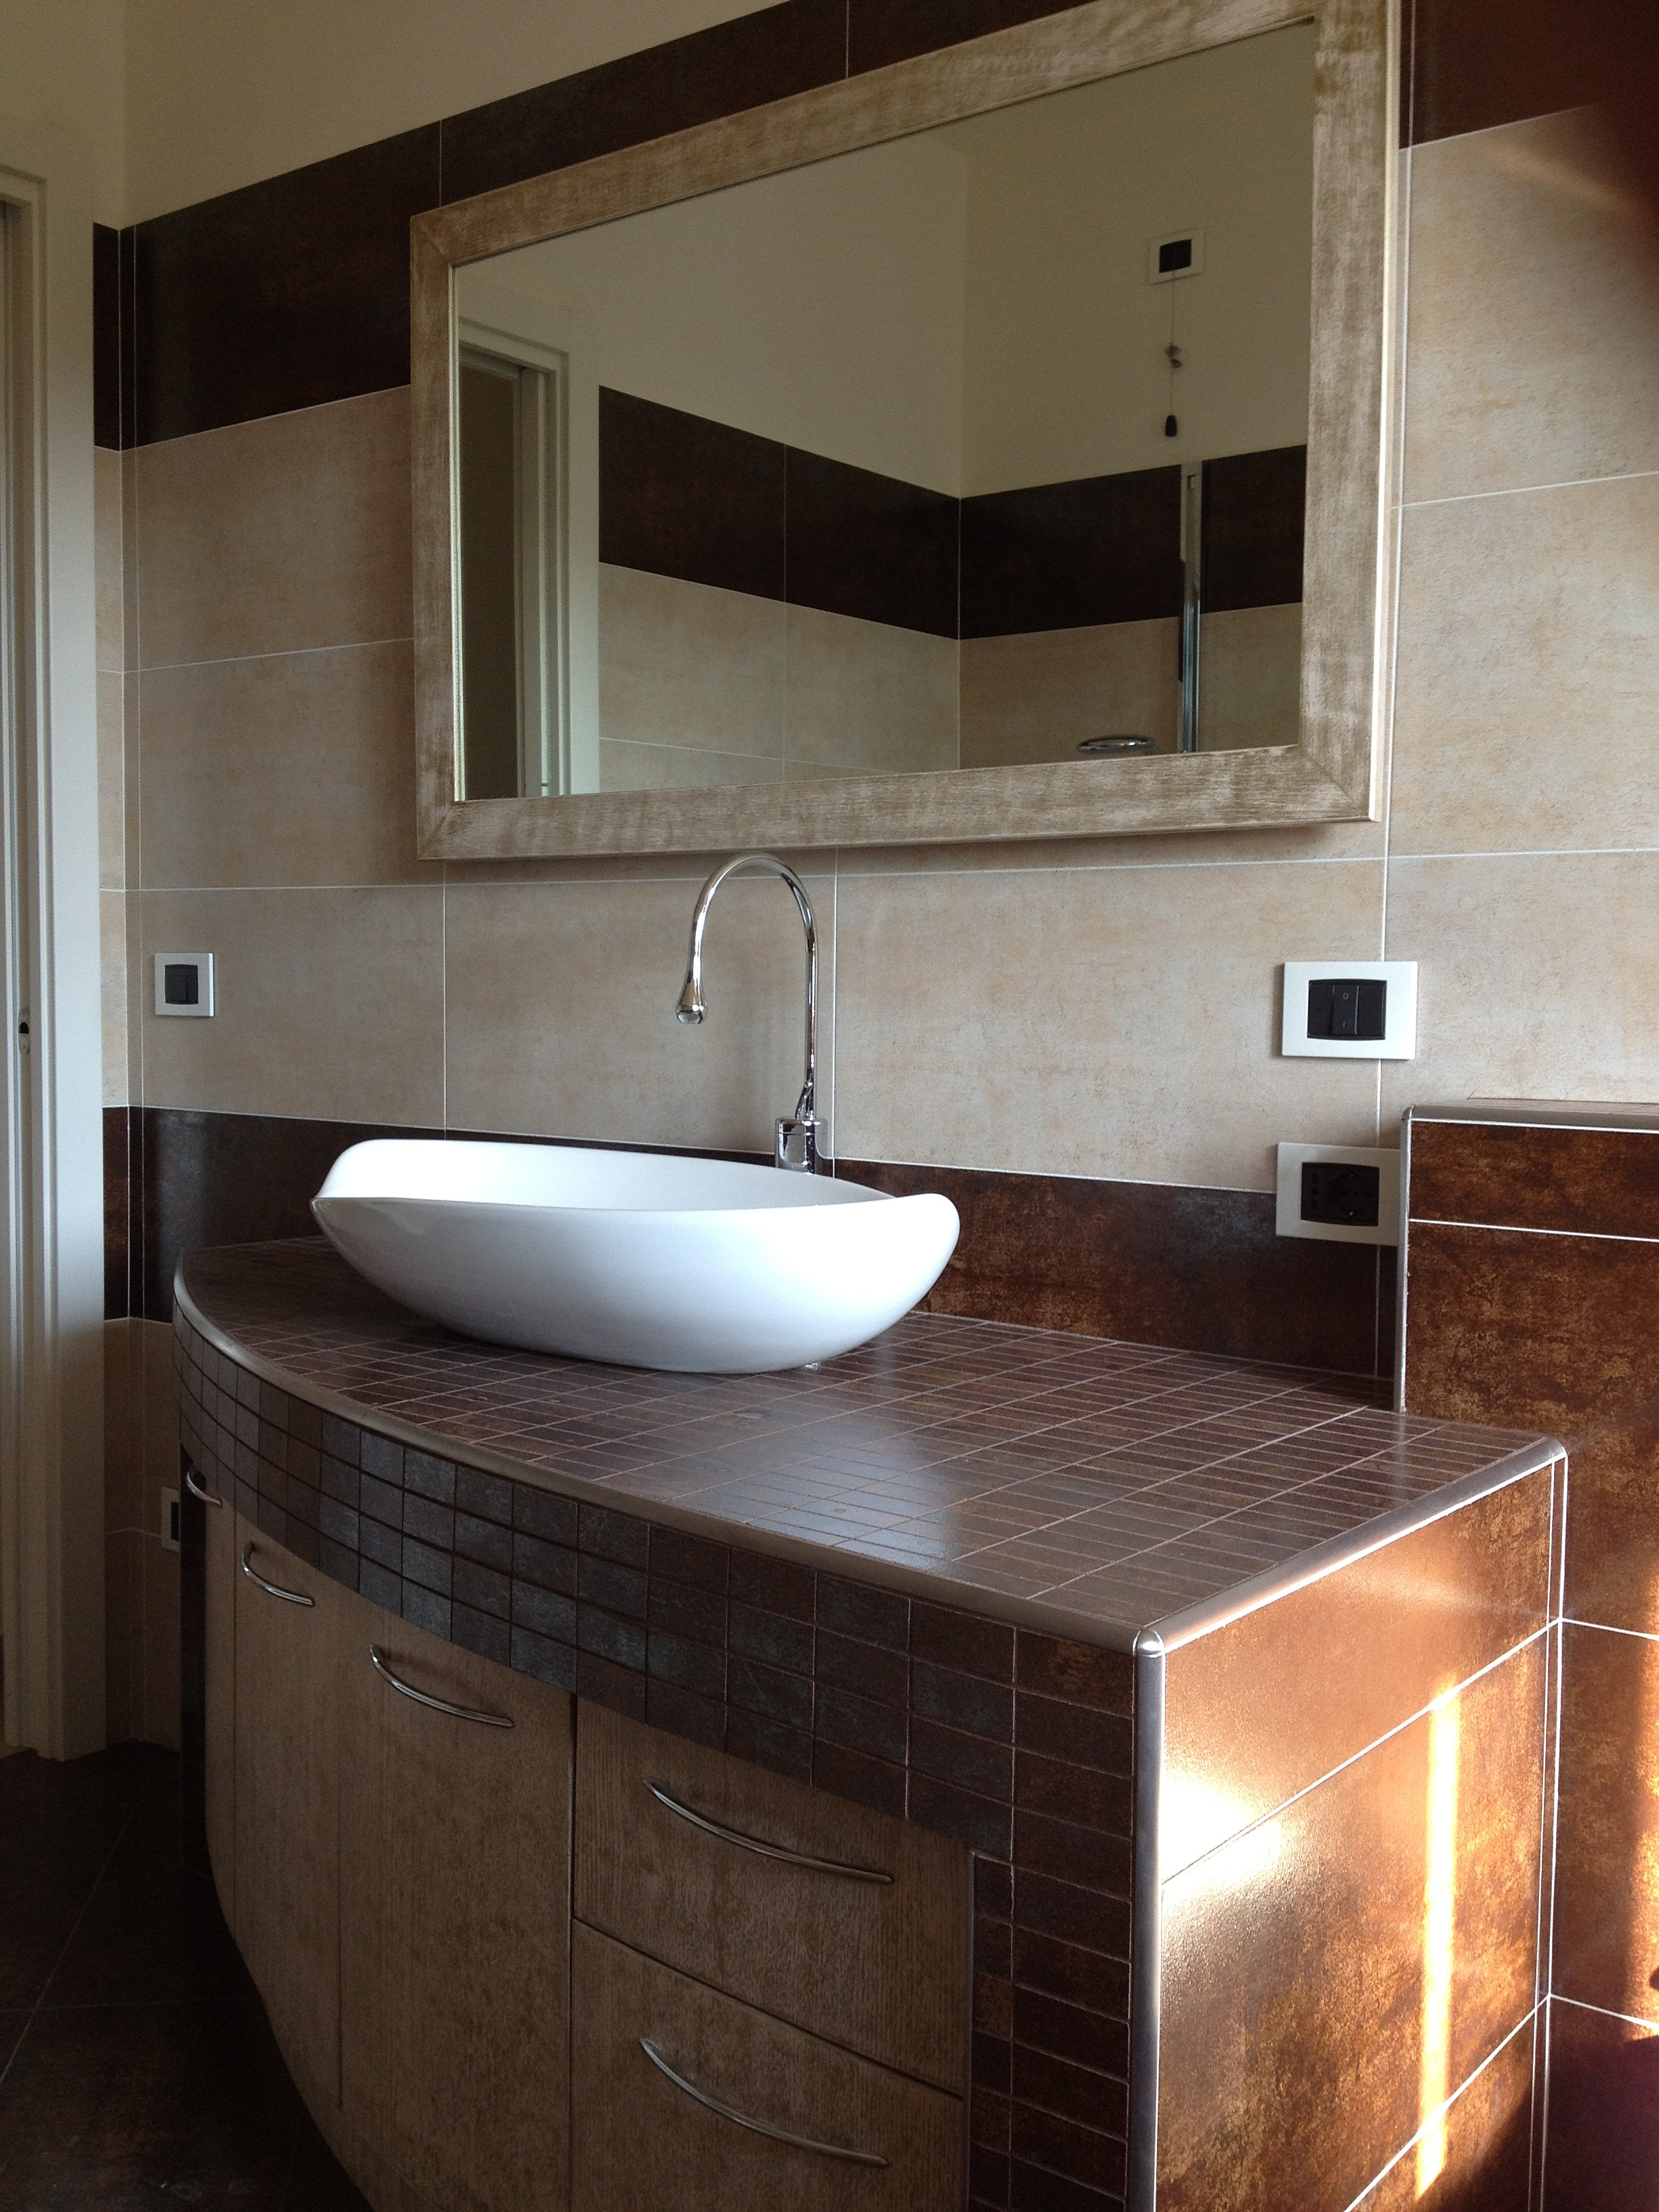 Home for Bagno 1 5 x 2